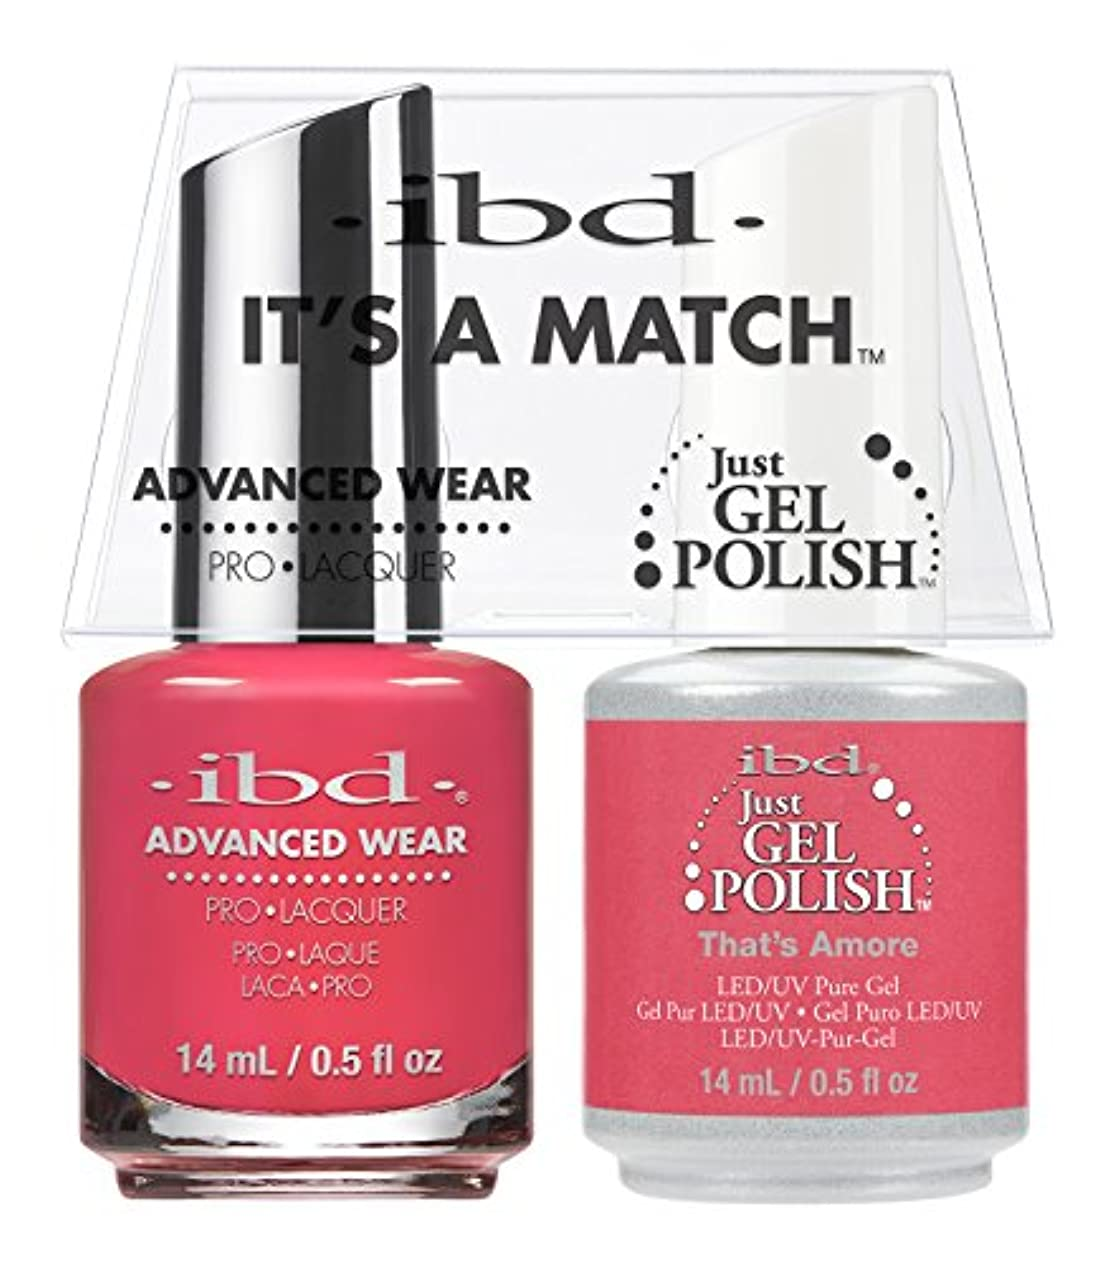 ibd - It's A Match -Duo Pack- That's Amore - 14 mL / 0.5 oz Each